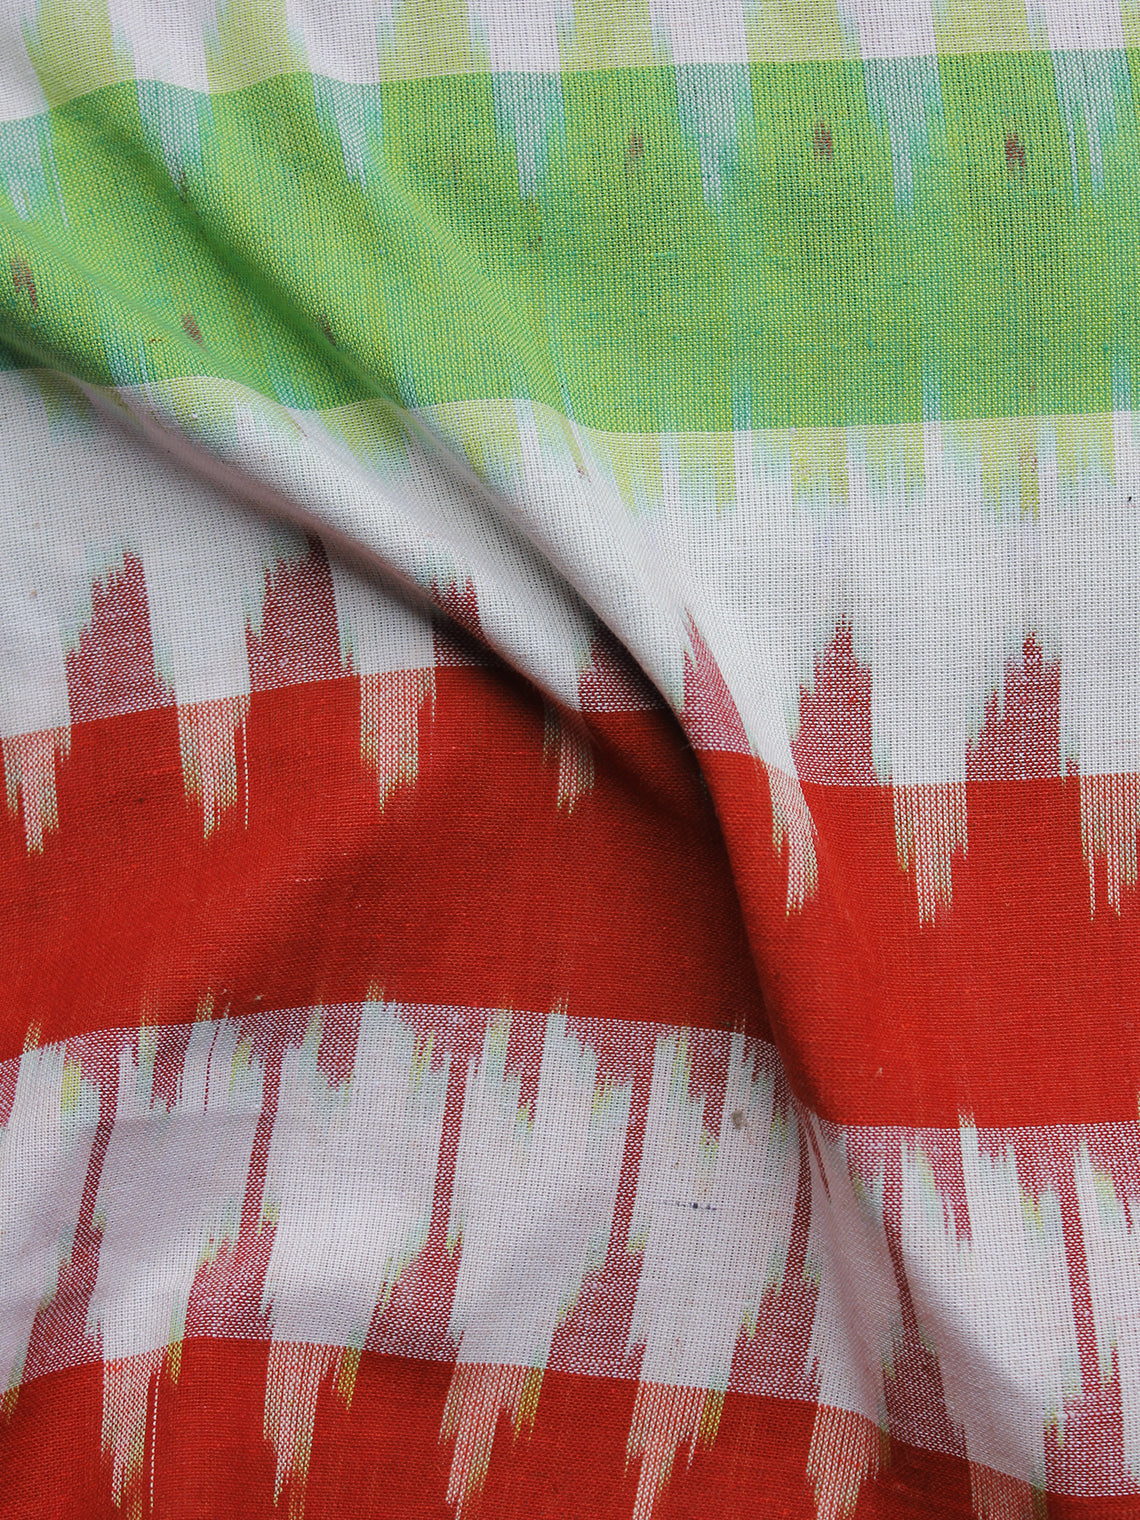 Green Red White Pochampally Hand Woven Ikat Fabric Per Meter - F002F977